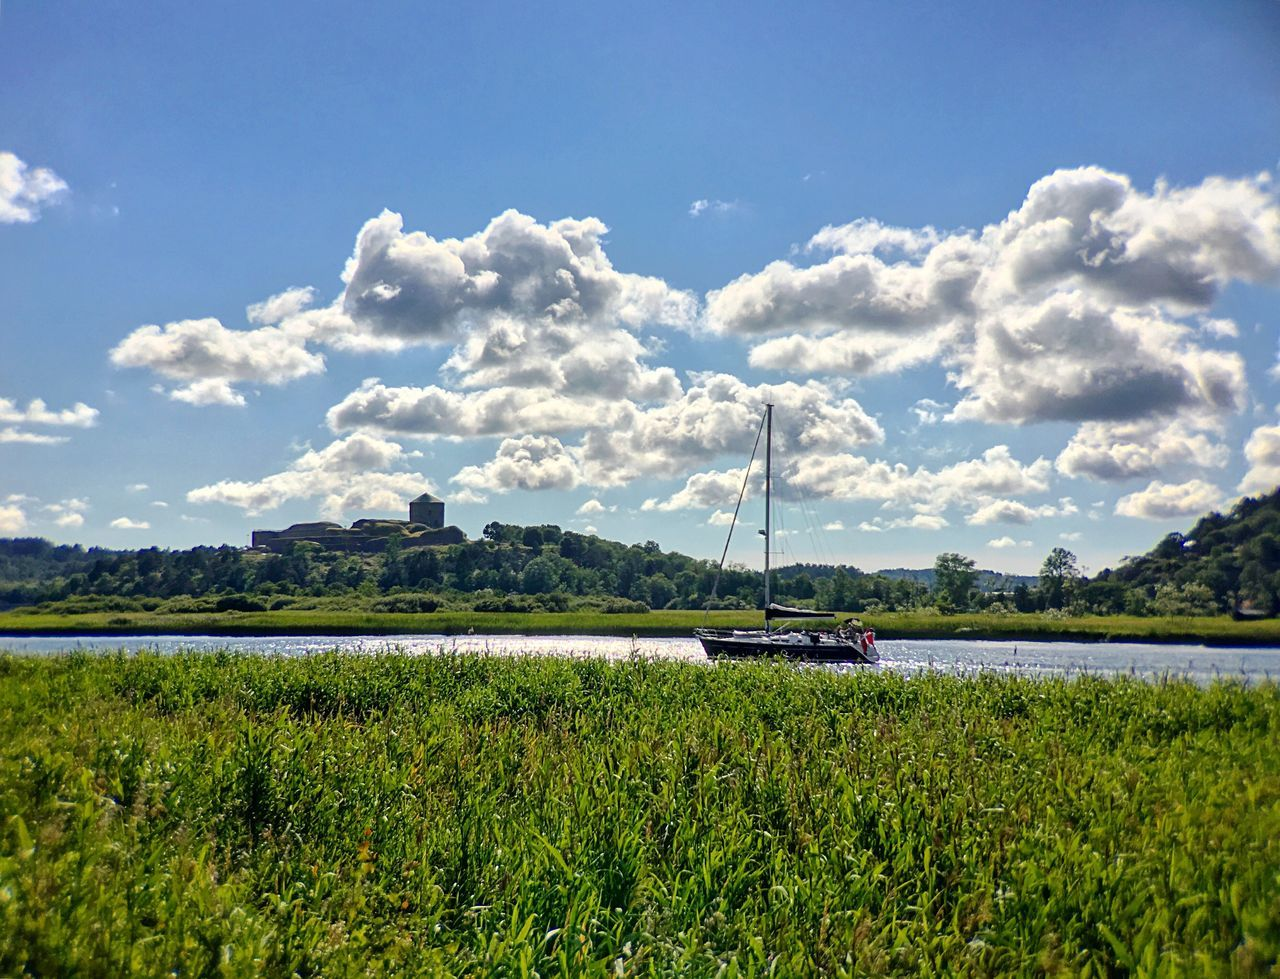 sky, field, grass, cloud - sky, nature, mode of transport, nautical vessel, tranquility, tranquil scene, beauty in nature, transportation, scenics, green color, day, outdoors, growth, no people, water, landscape, tree